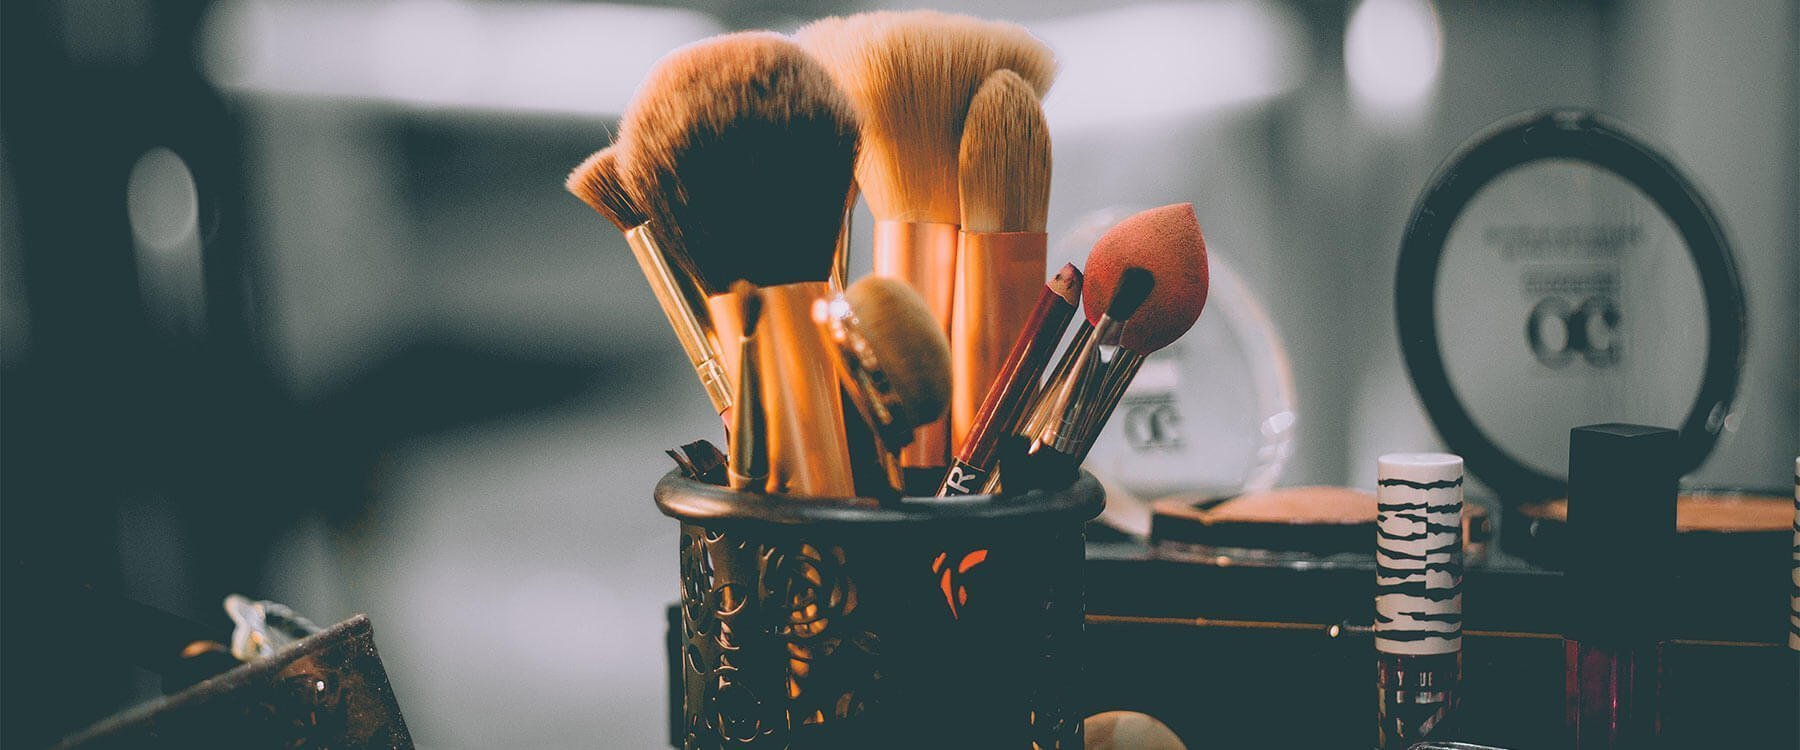 Phthalates are Beauty Toxins: 4 Tips on Avoiding Them